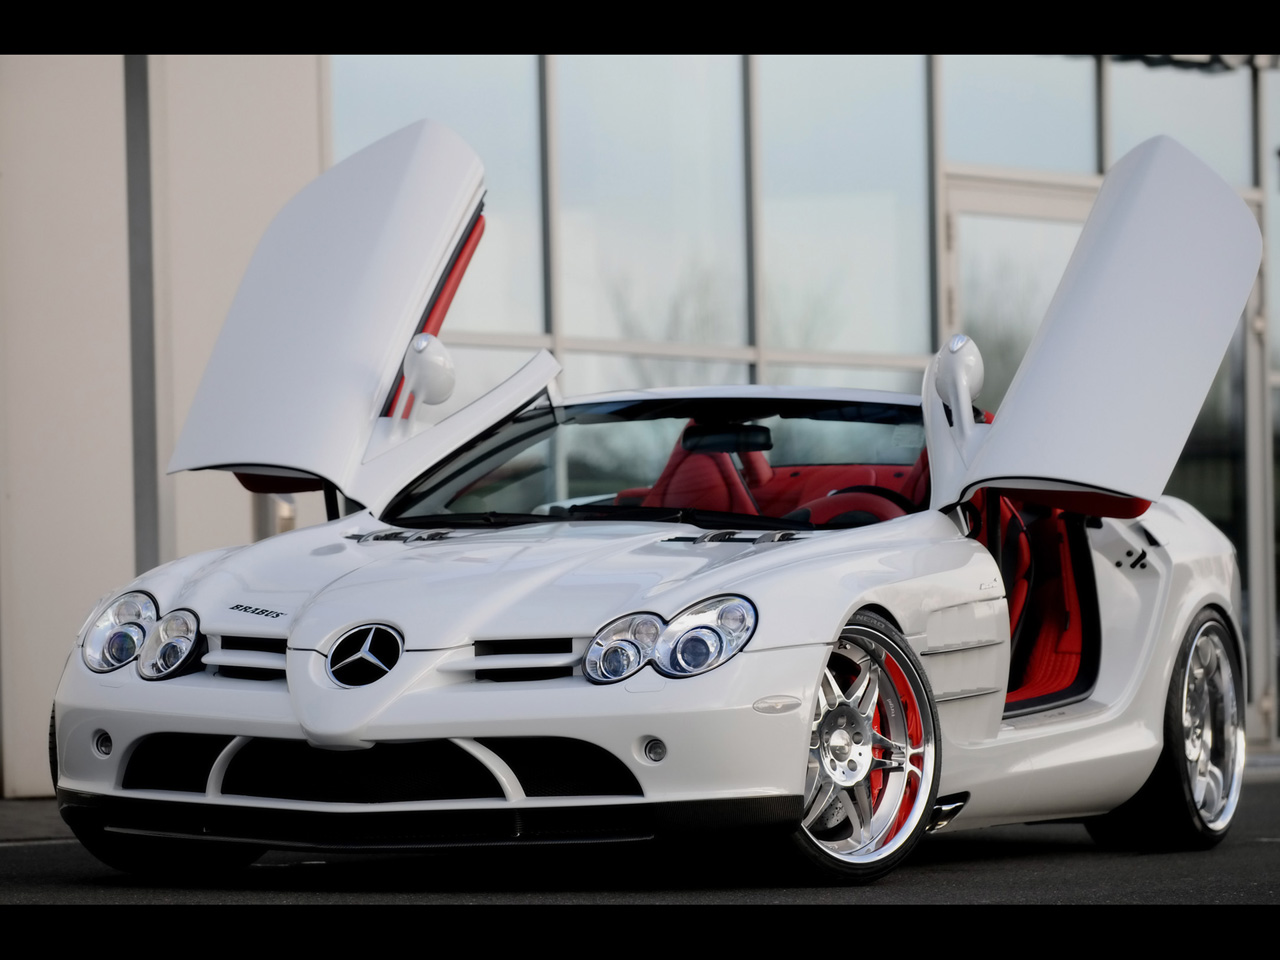 Mercedes-benz slr photo - 1